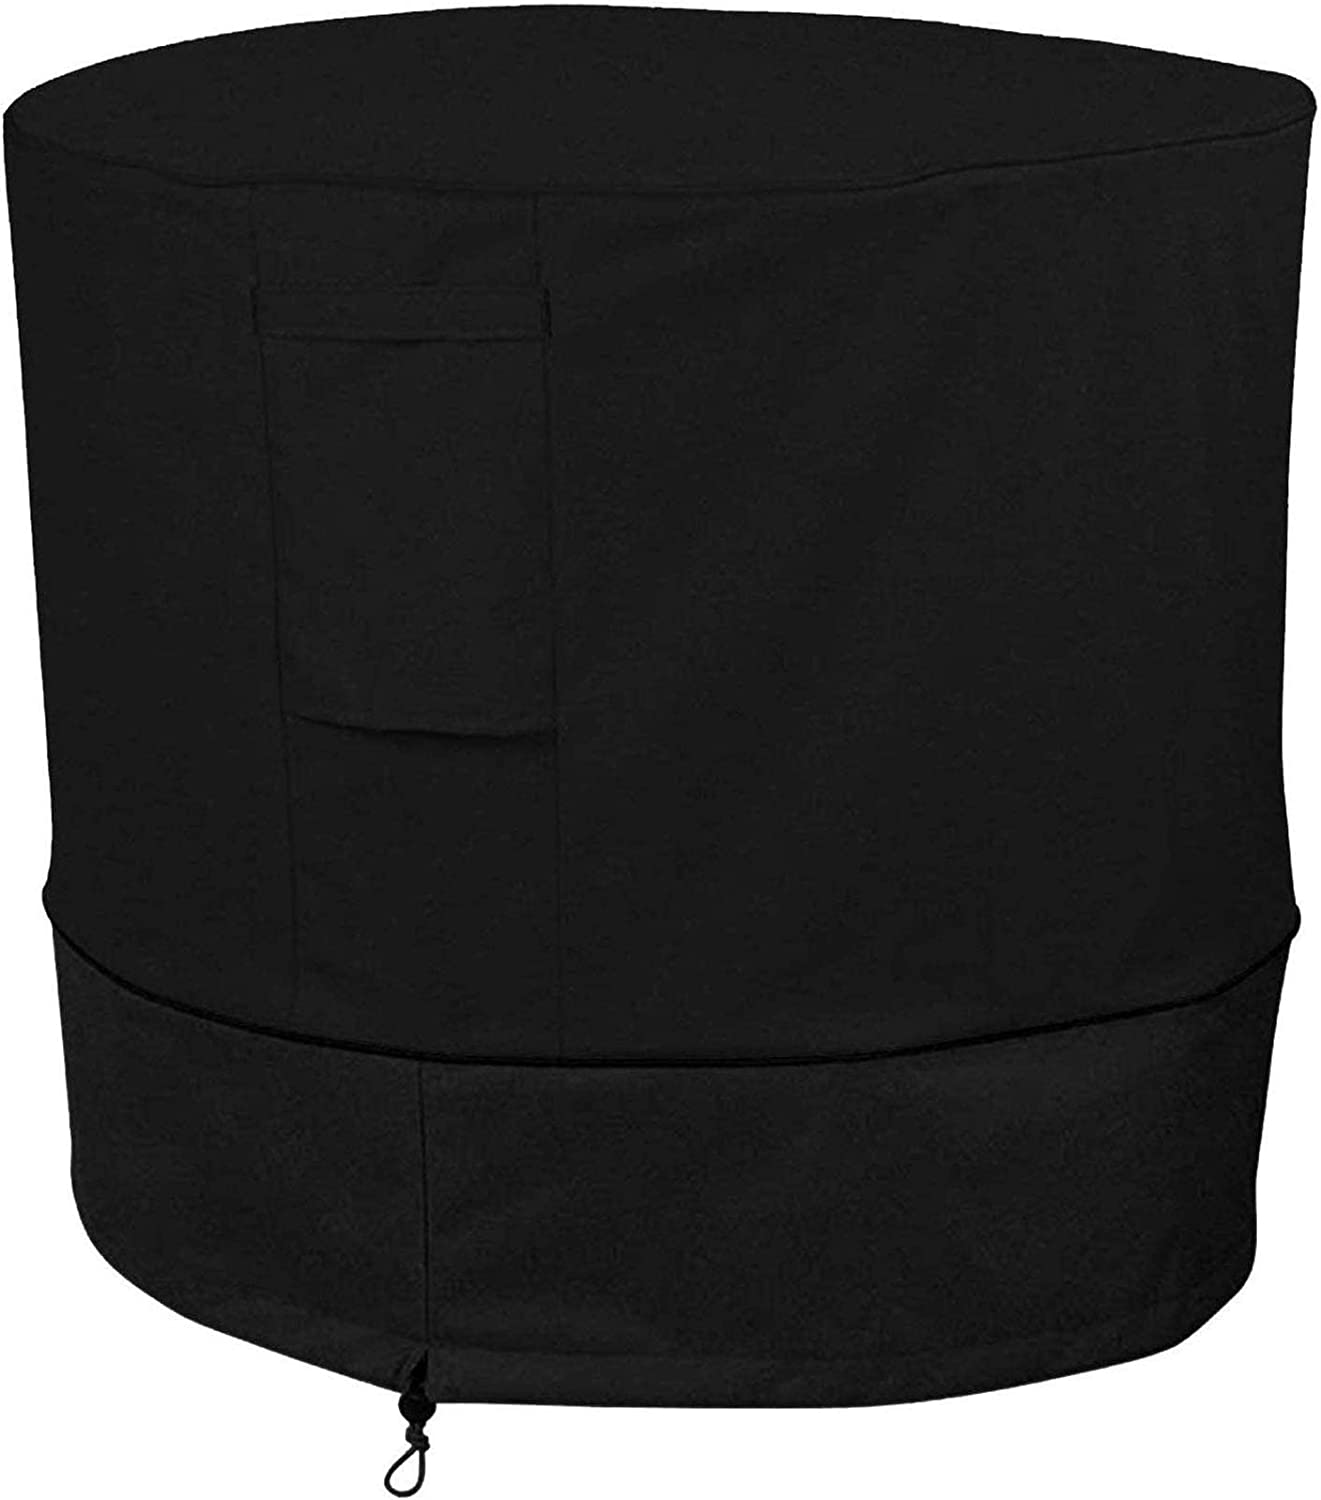 Ailelan Air Conditioner Cover Heavy Duty Large Universal Veranda Winter AC Unit Cover for Standard American Furniture Central Outdoor Vent Full Cover (Round) 34 x 30 inches, Black